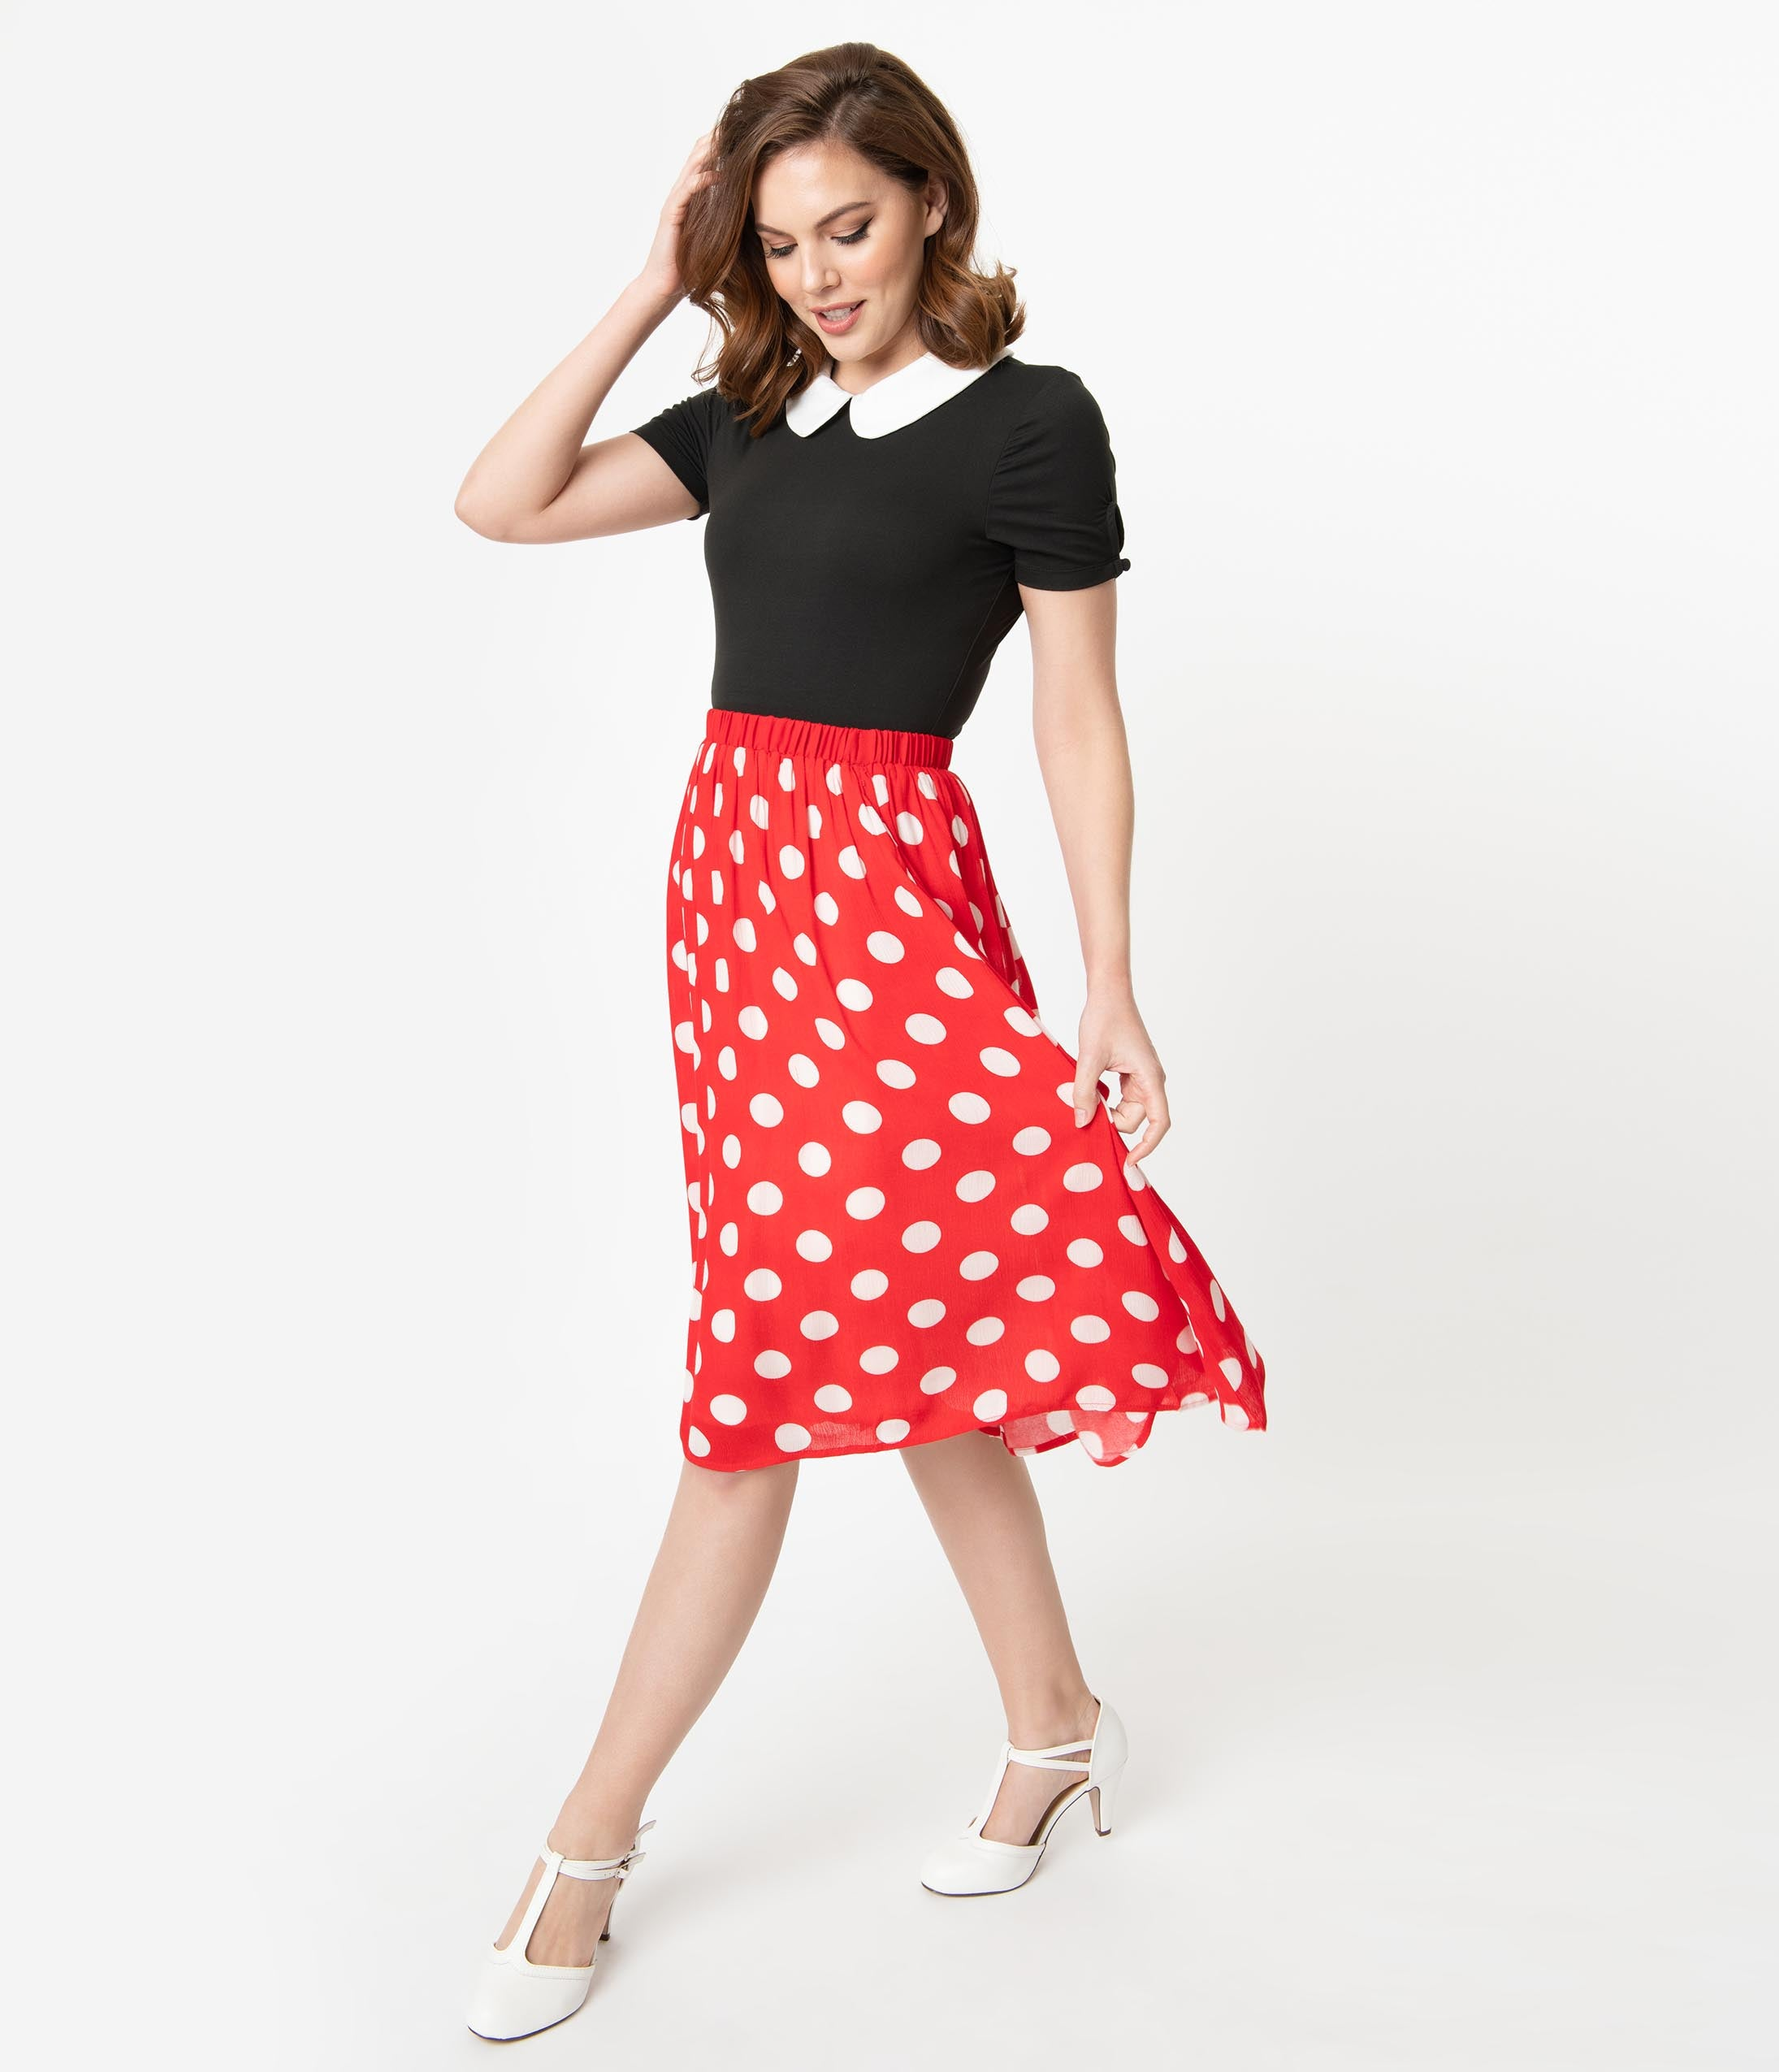 ef9fcdb22 Dapper Day Outfit Ideas | Vintage Disney Dresses Retro Style Red White  Polka Dot Gathered Swing